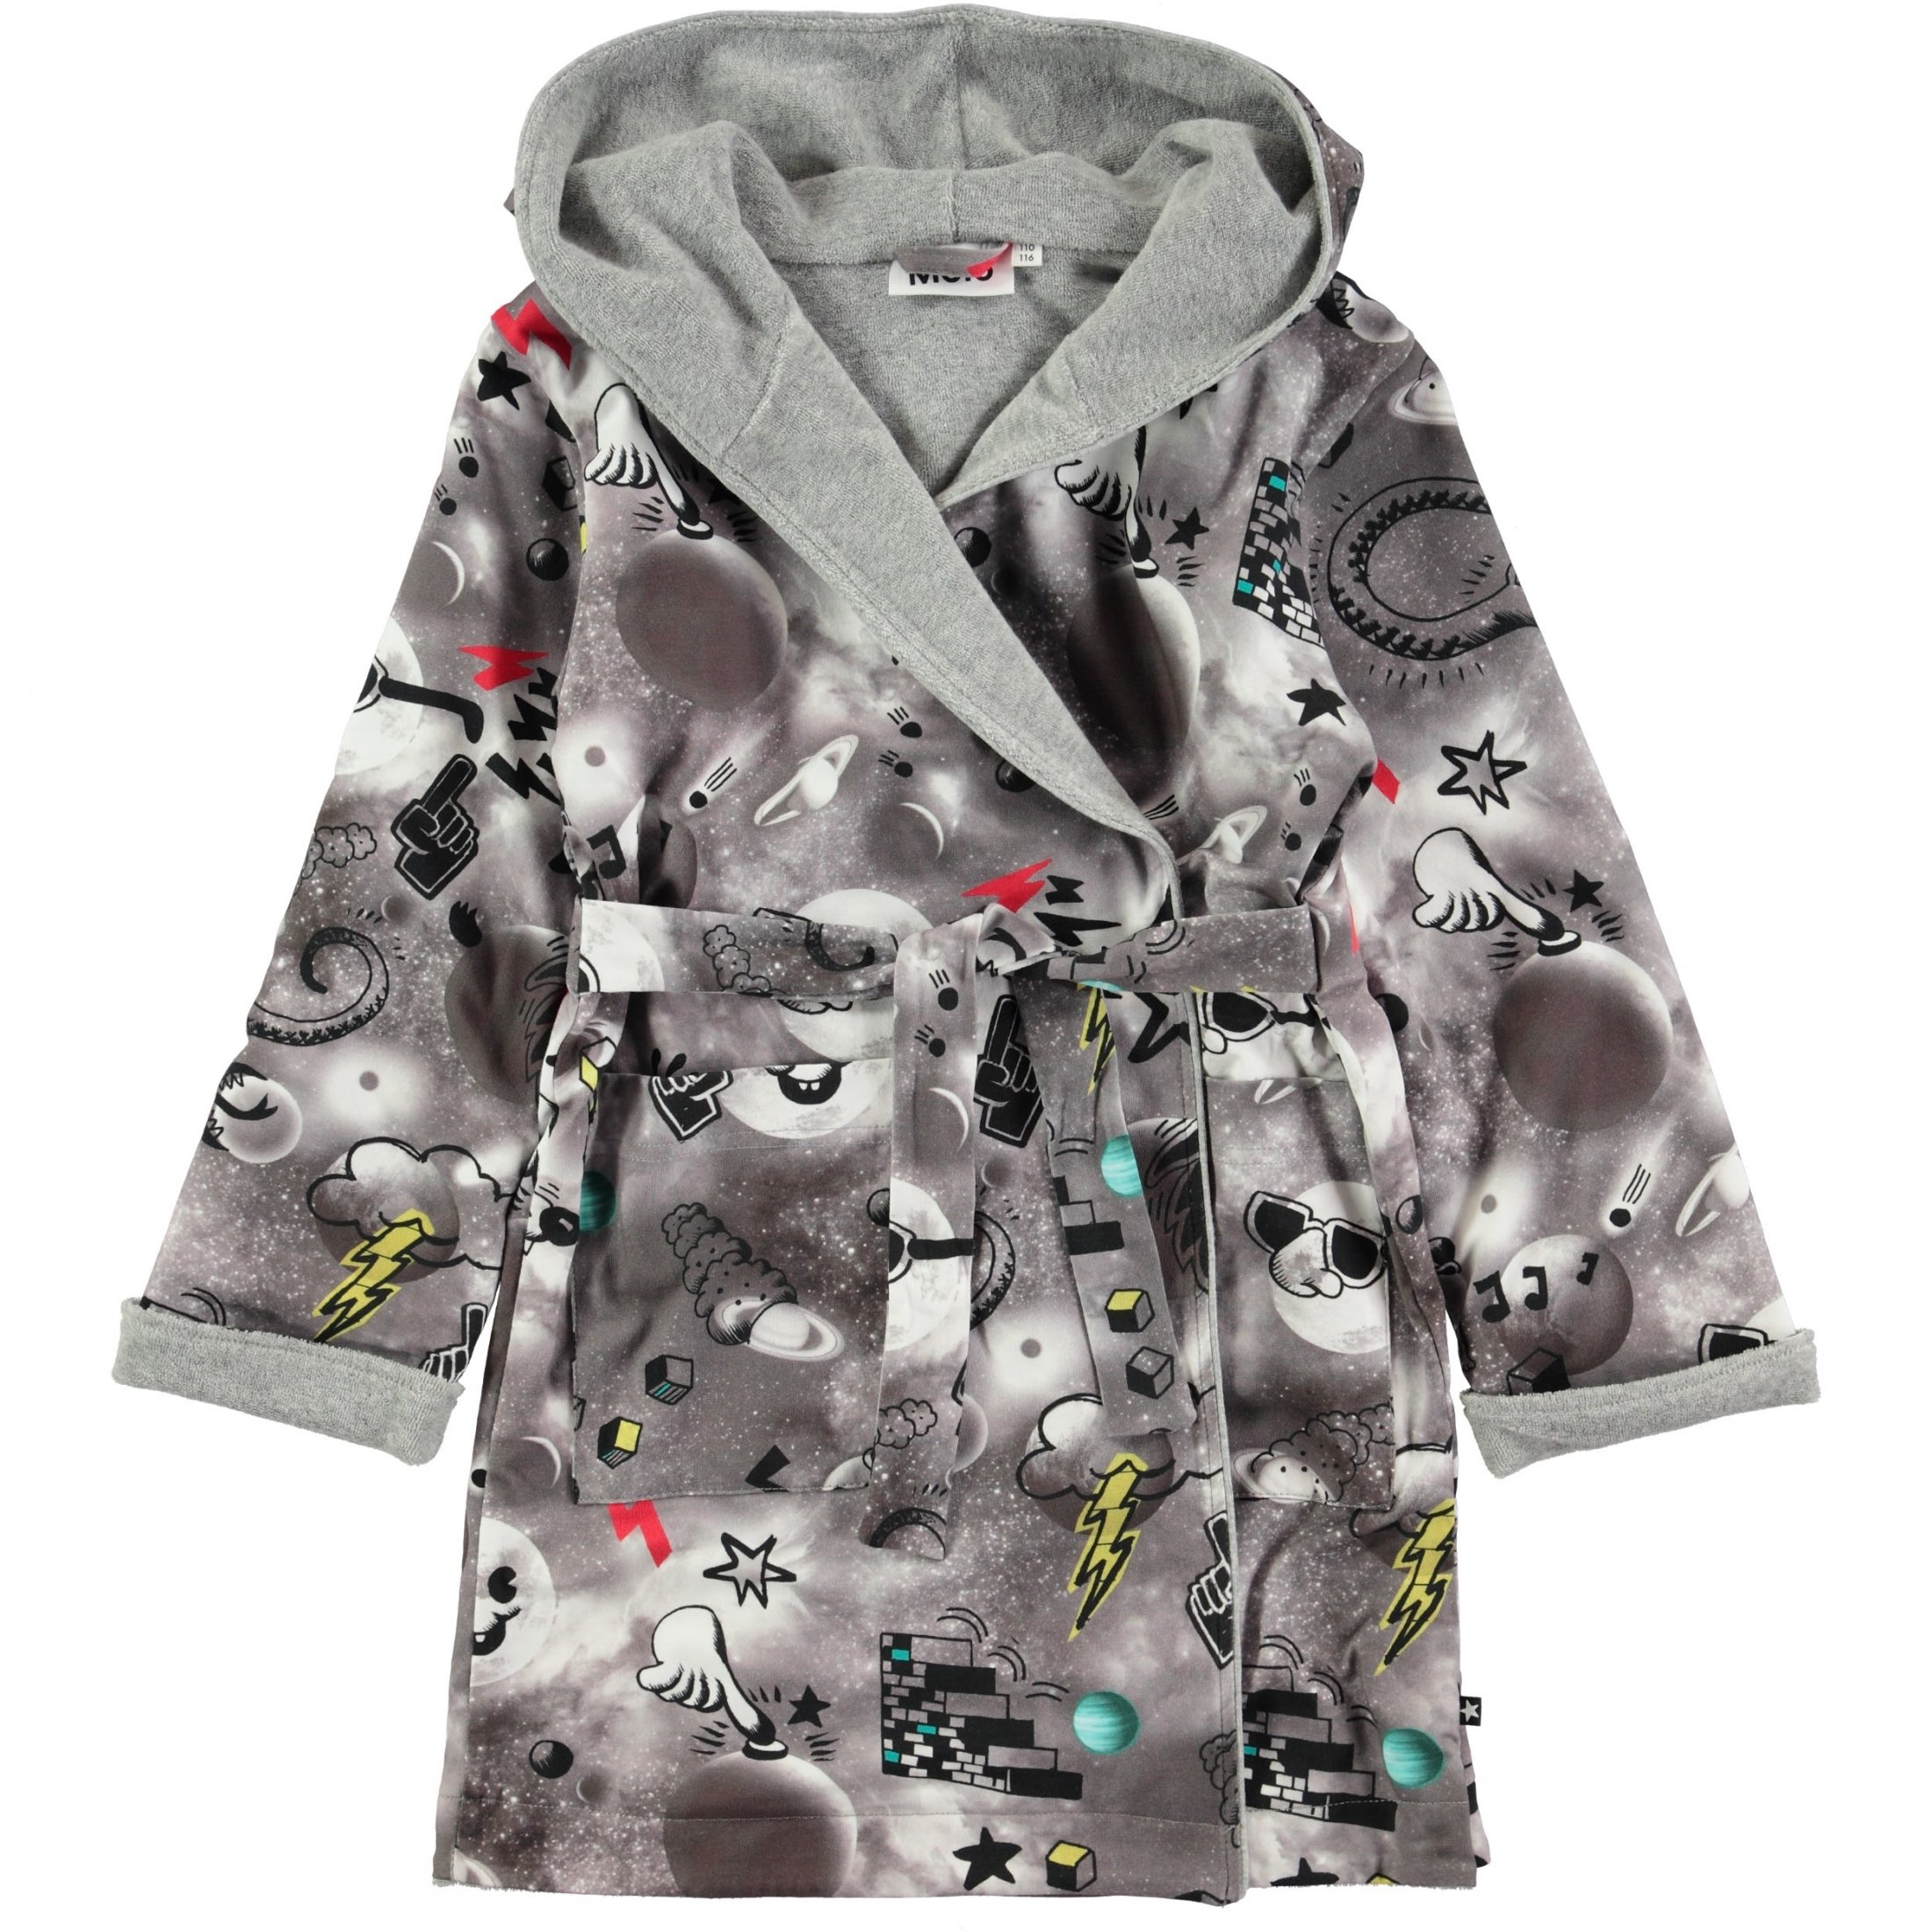 Comic Space Dressing Gown £97